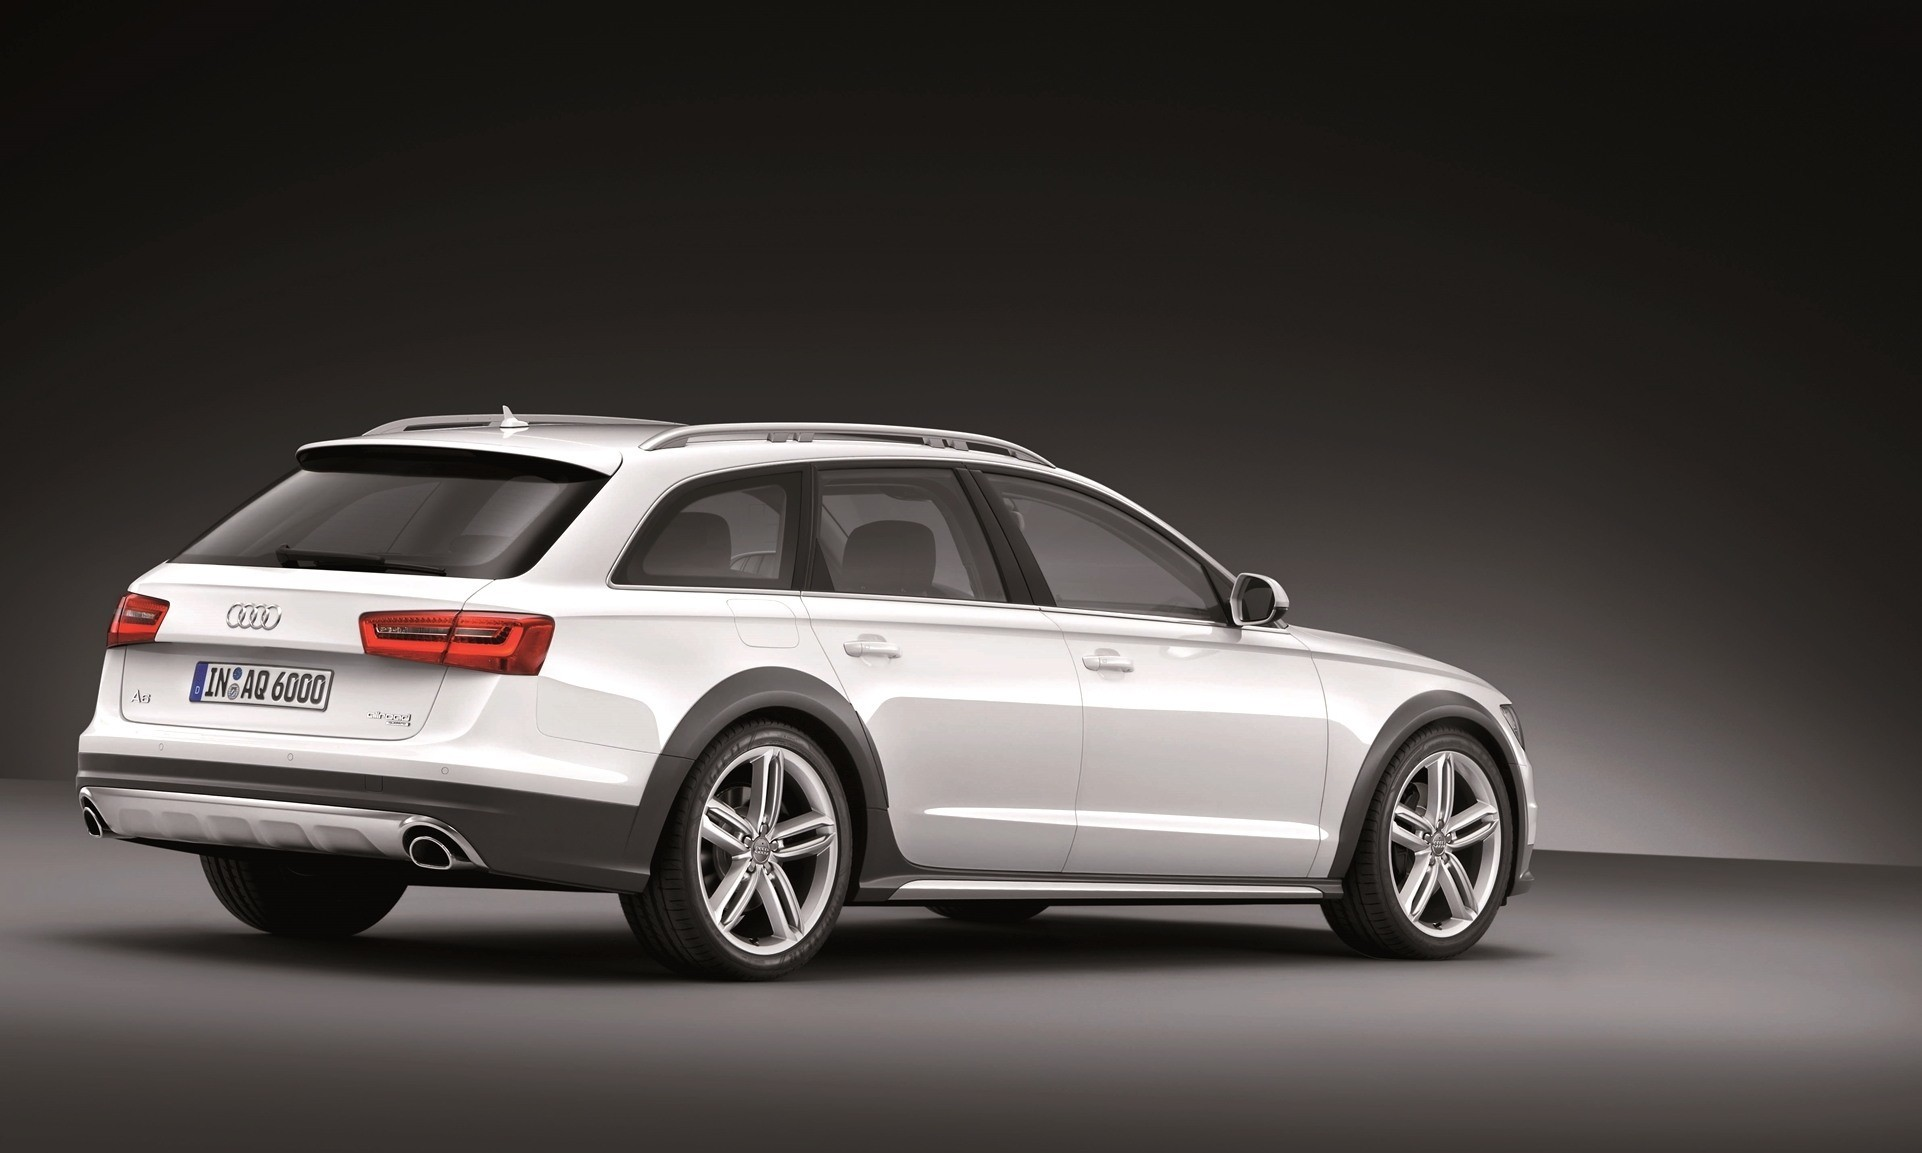 euro wagon envy 2014 audi a6 allroad how to convince audi ag the usa is worthwhile. Black Bedroom Furniture Sets. Home Design Ideas